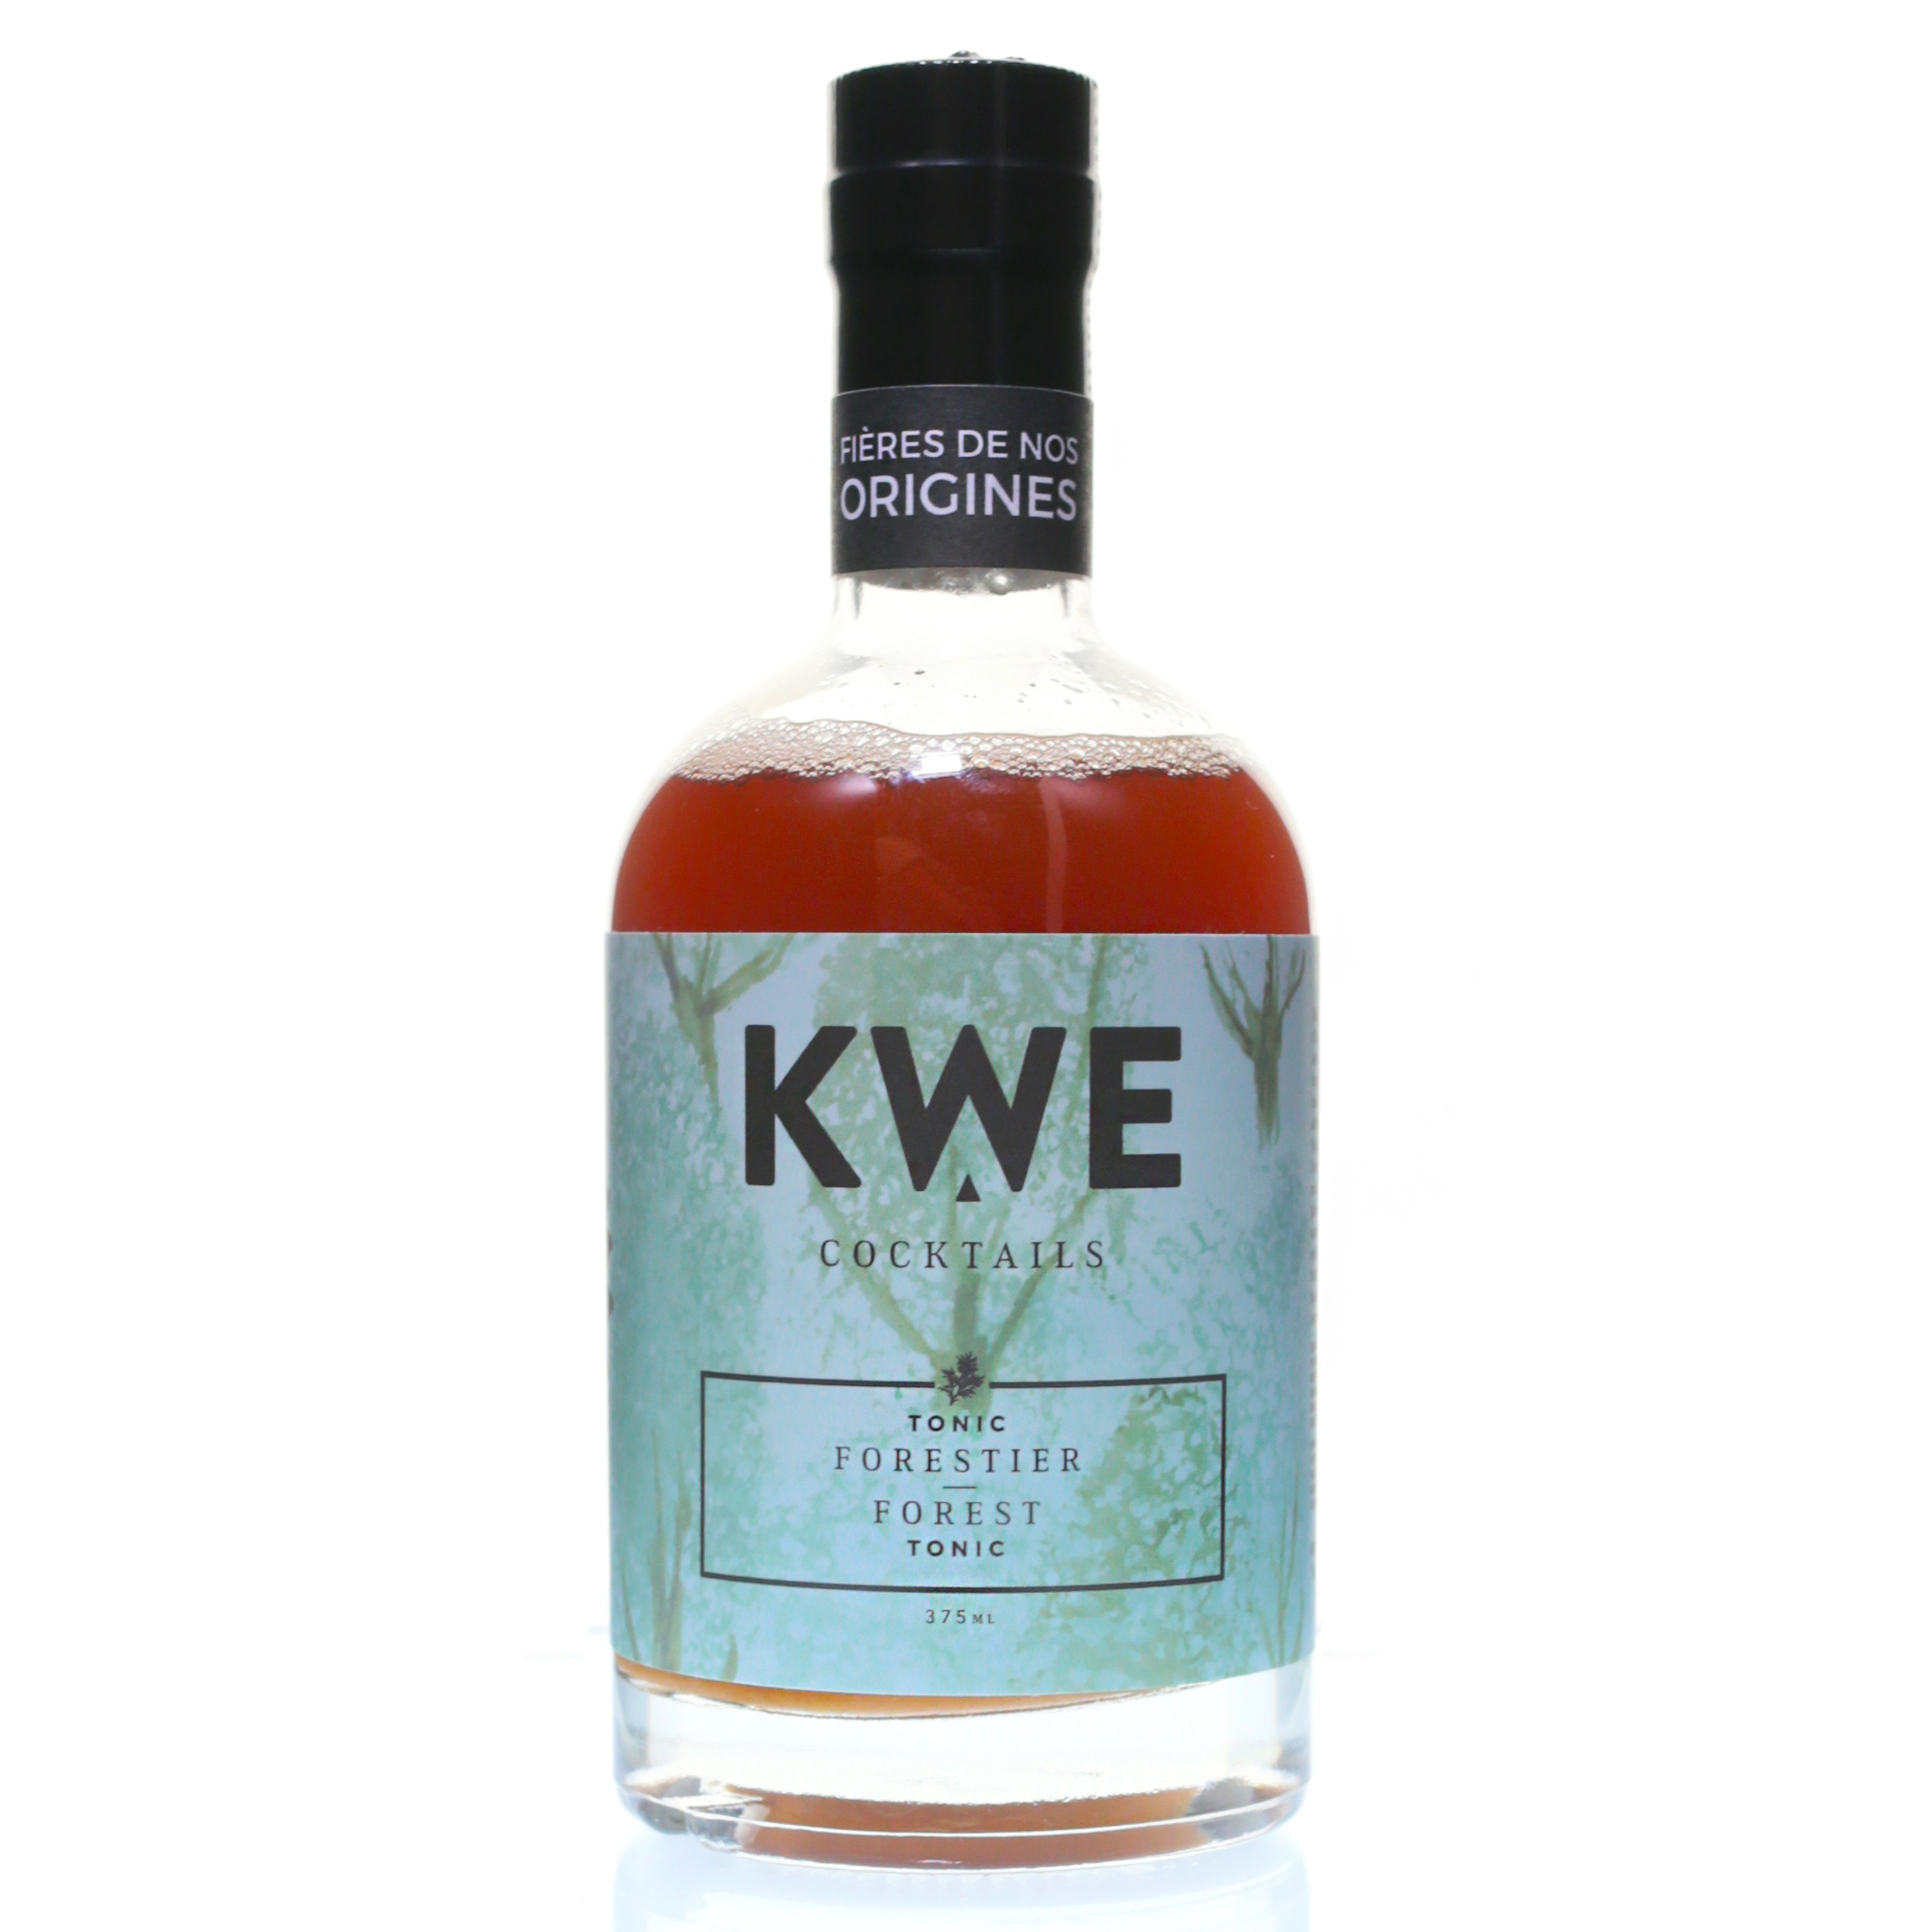 Kwe Cocktails - Forester Tonic Syrup 375ml